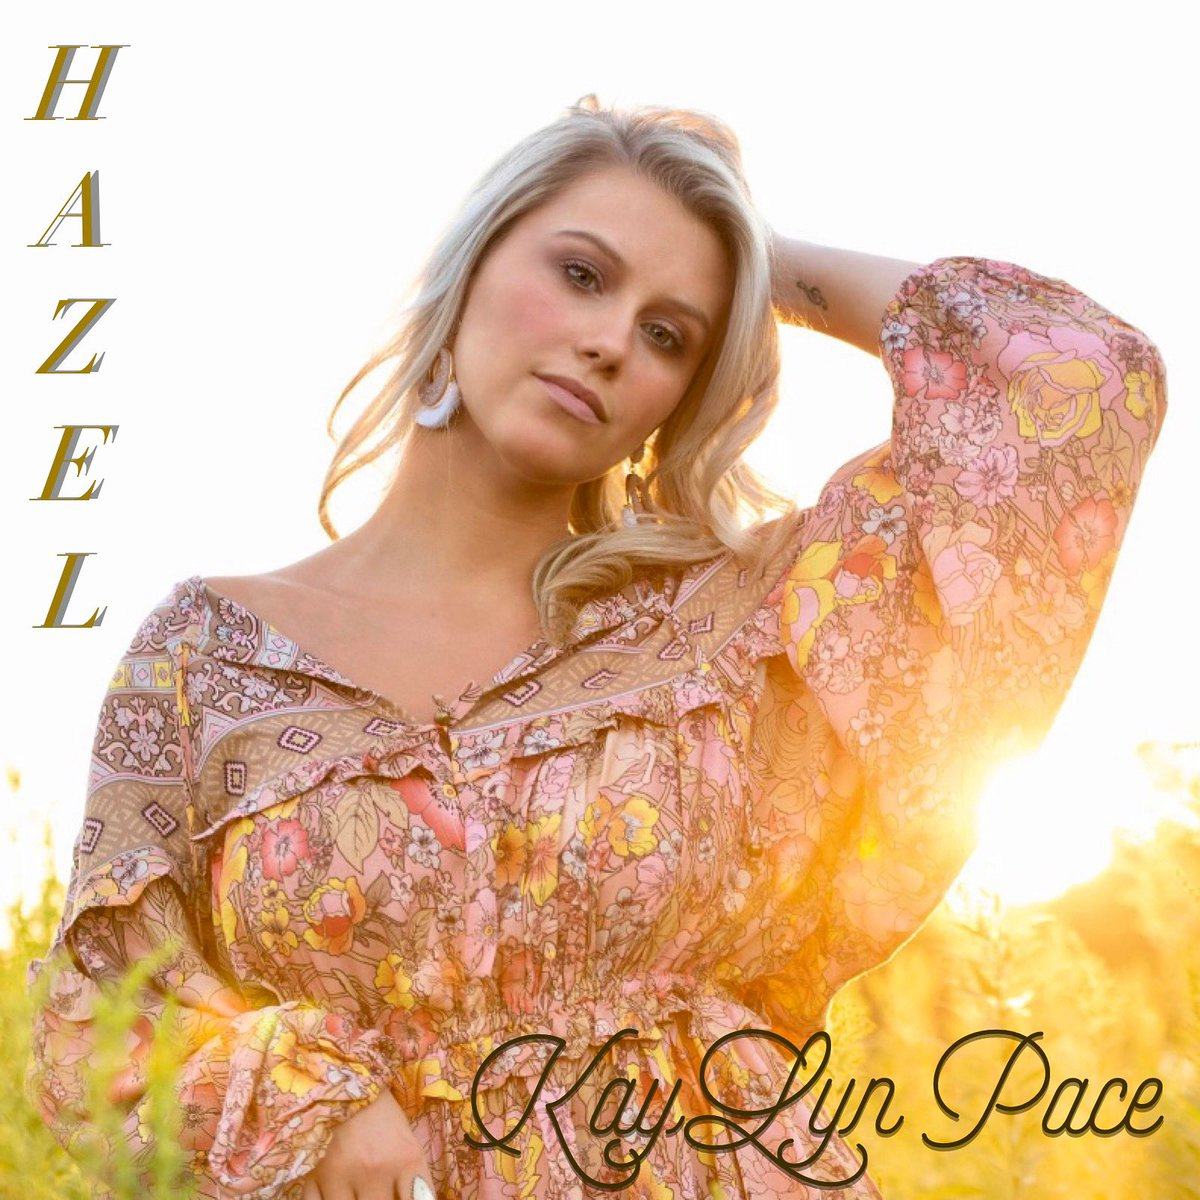 H A Z E L   ITS OUT YALL!!!   Available on all digital platforms!😆   I really hope y'all enjoy this one and happy Friday!!!! 🎵 #newsingle #beyou #happy #yay #itsout #love #country   https://t.co/kqtGXxTMQD https://t.co/DgudbcYo8I